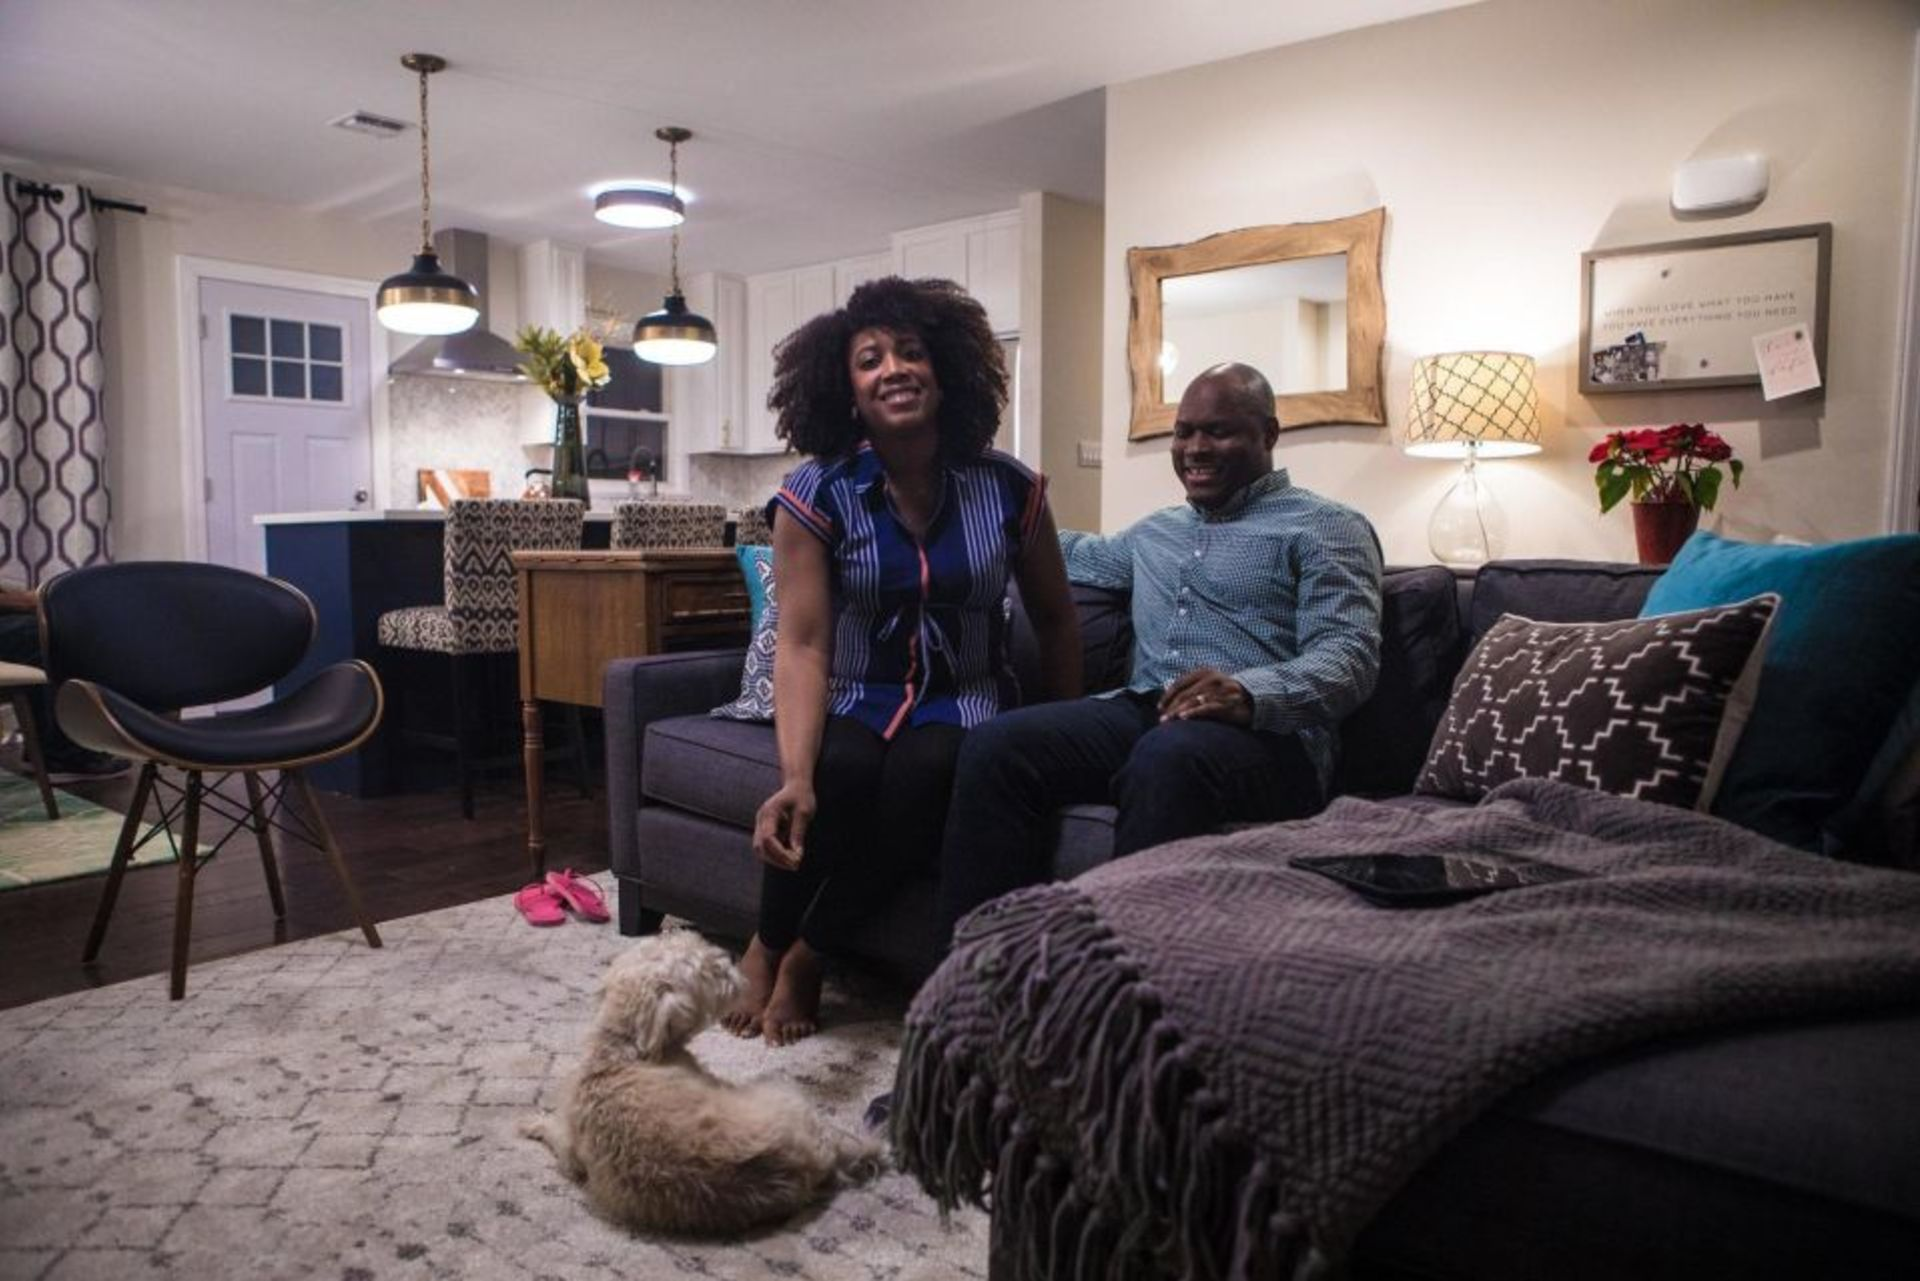 Tips for selling a house to millennials